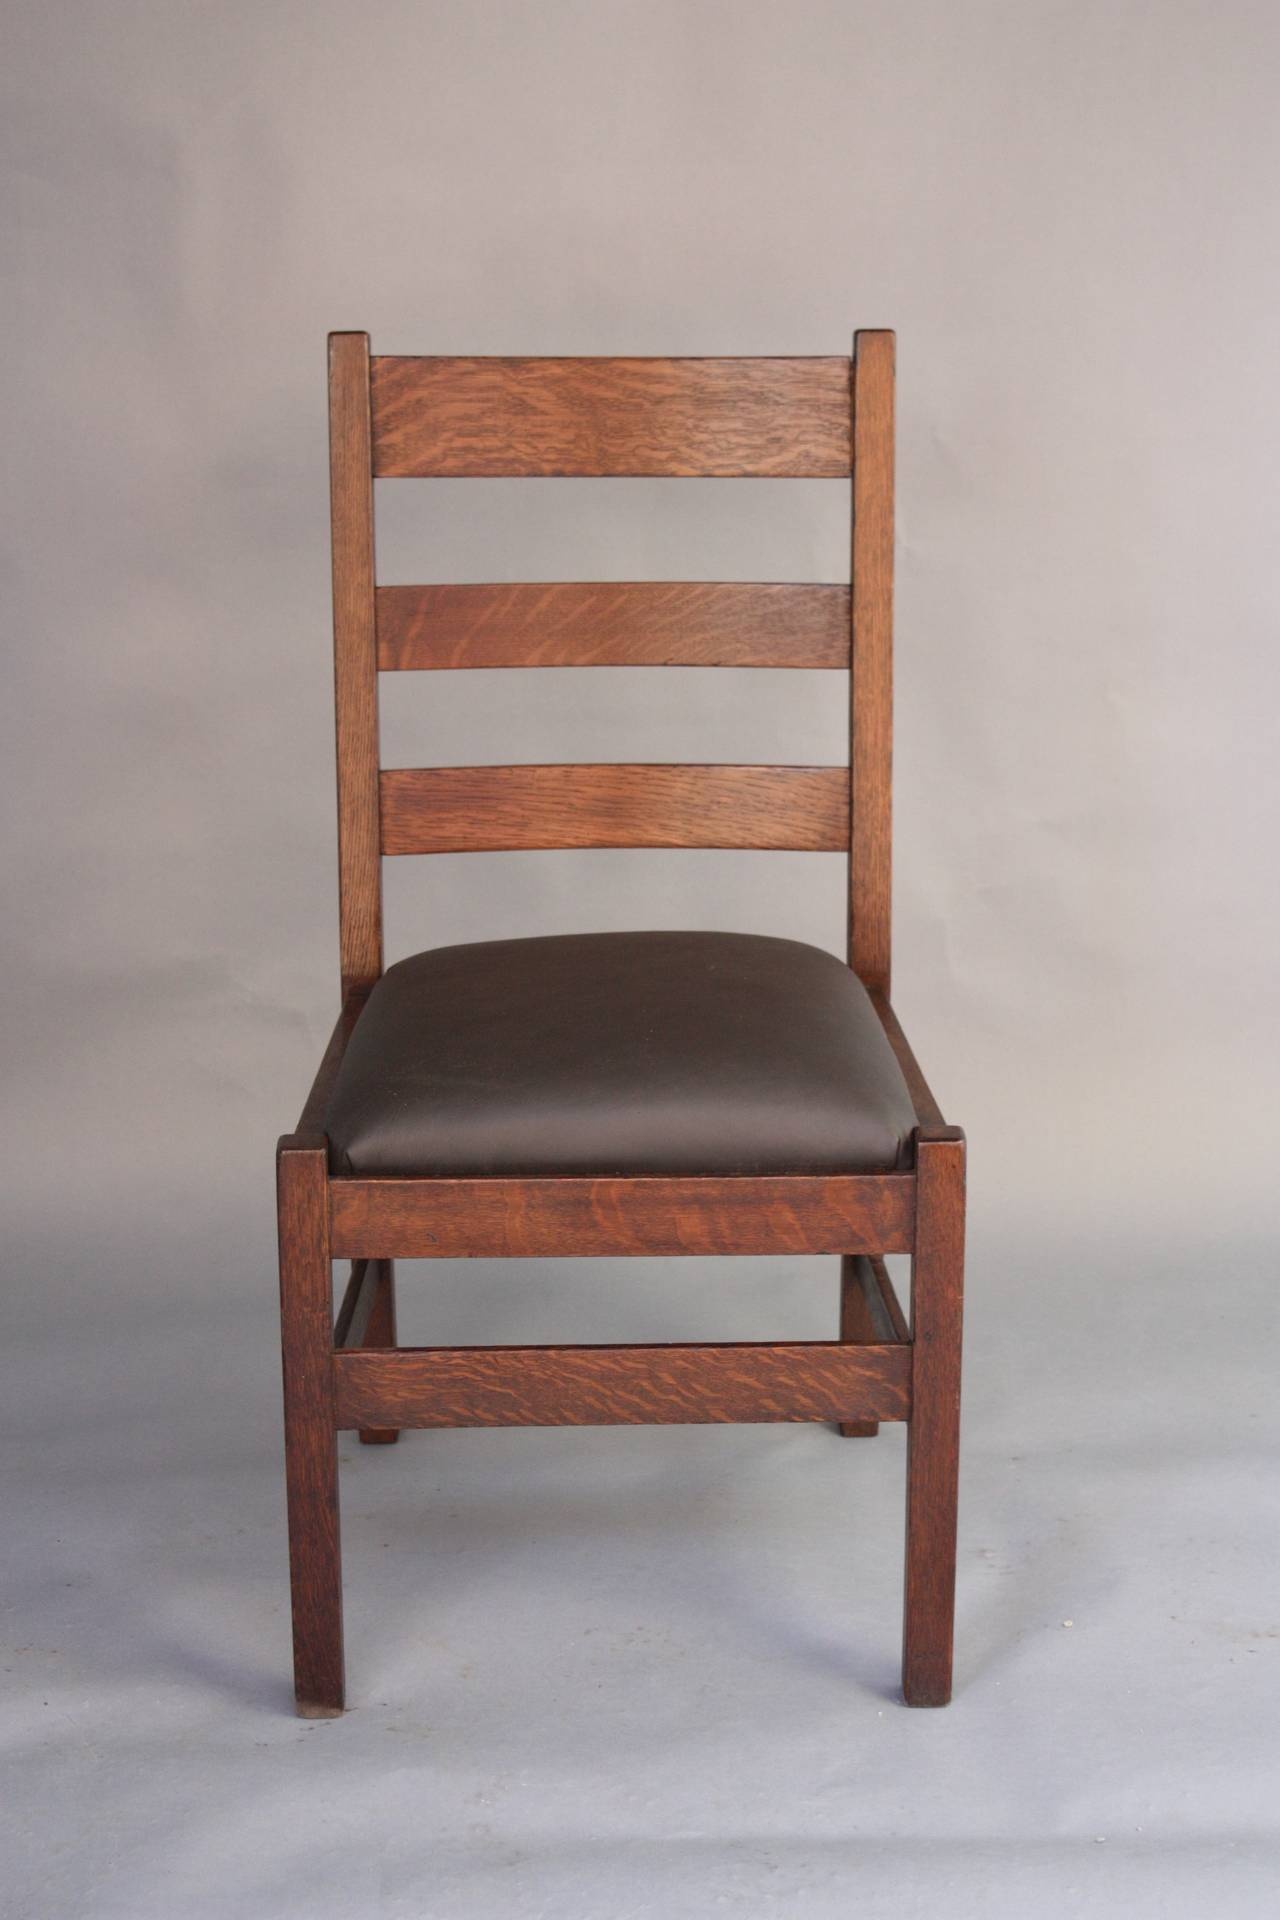 Stickley Chair 1910 Arts And Crafts Side Chair By Stickley And Brandt